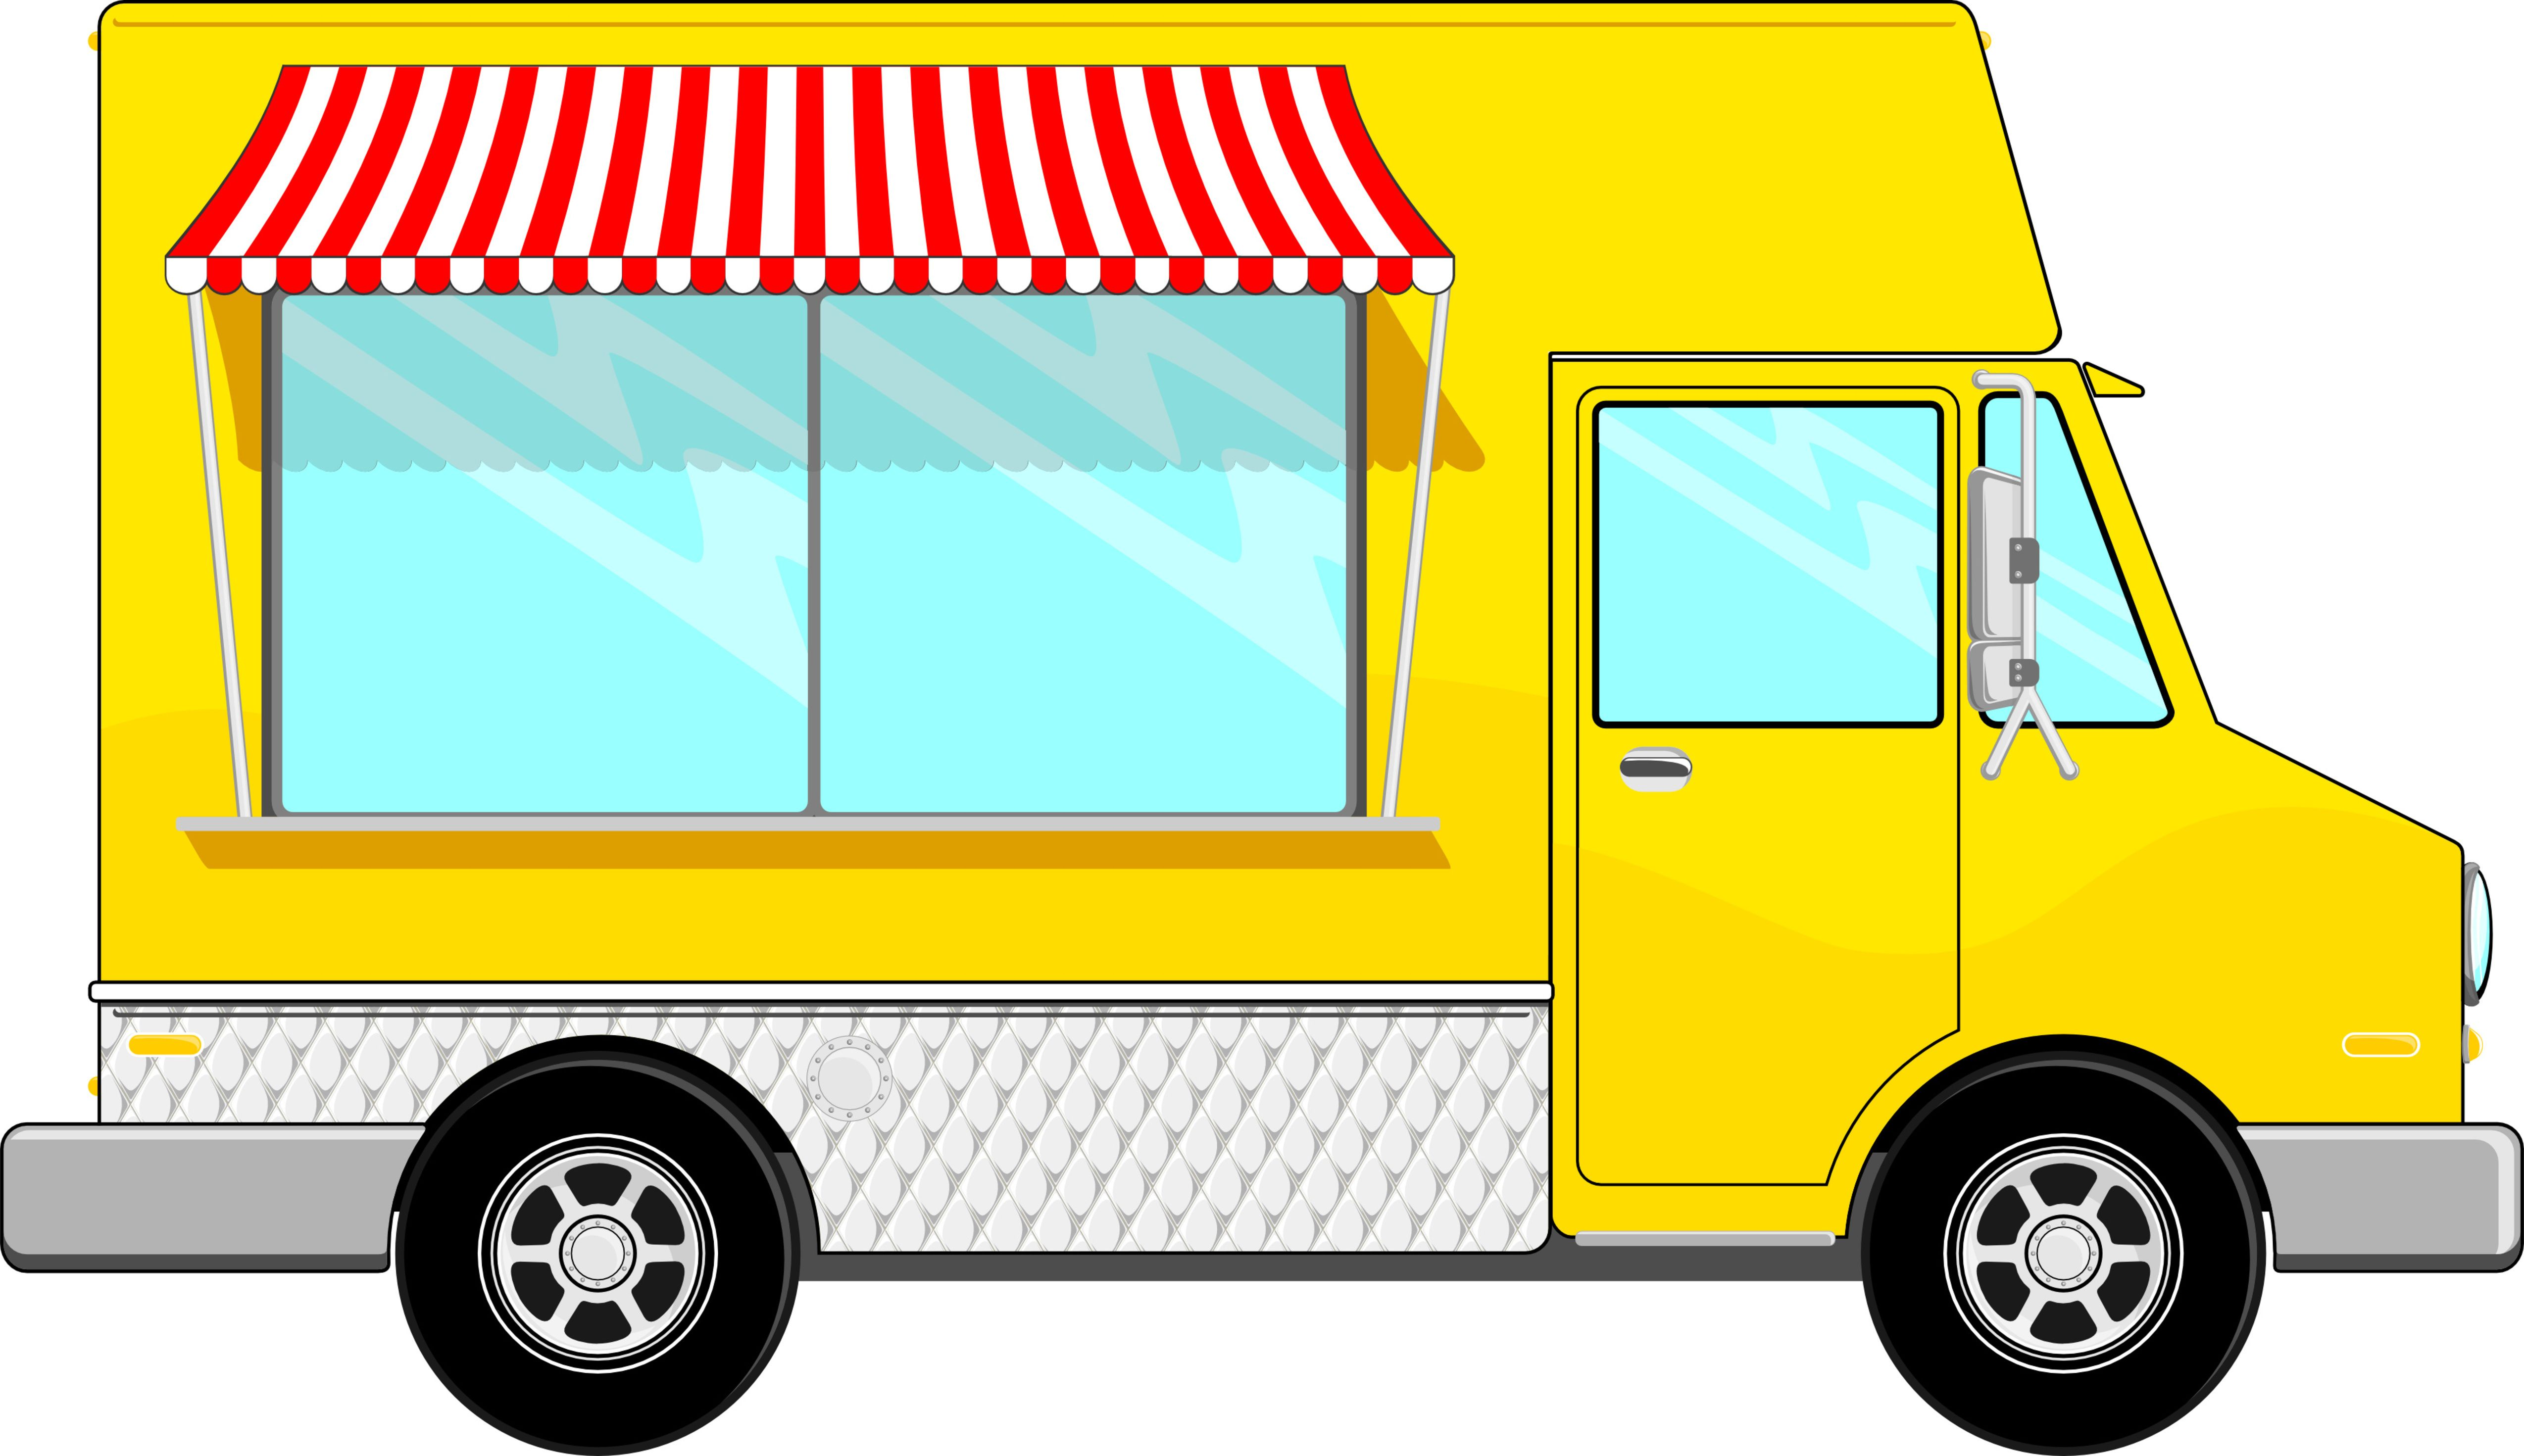 food-truck.jpg 5099×2942 pixels | Van, Food truck, Trucks